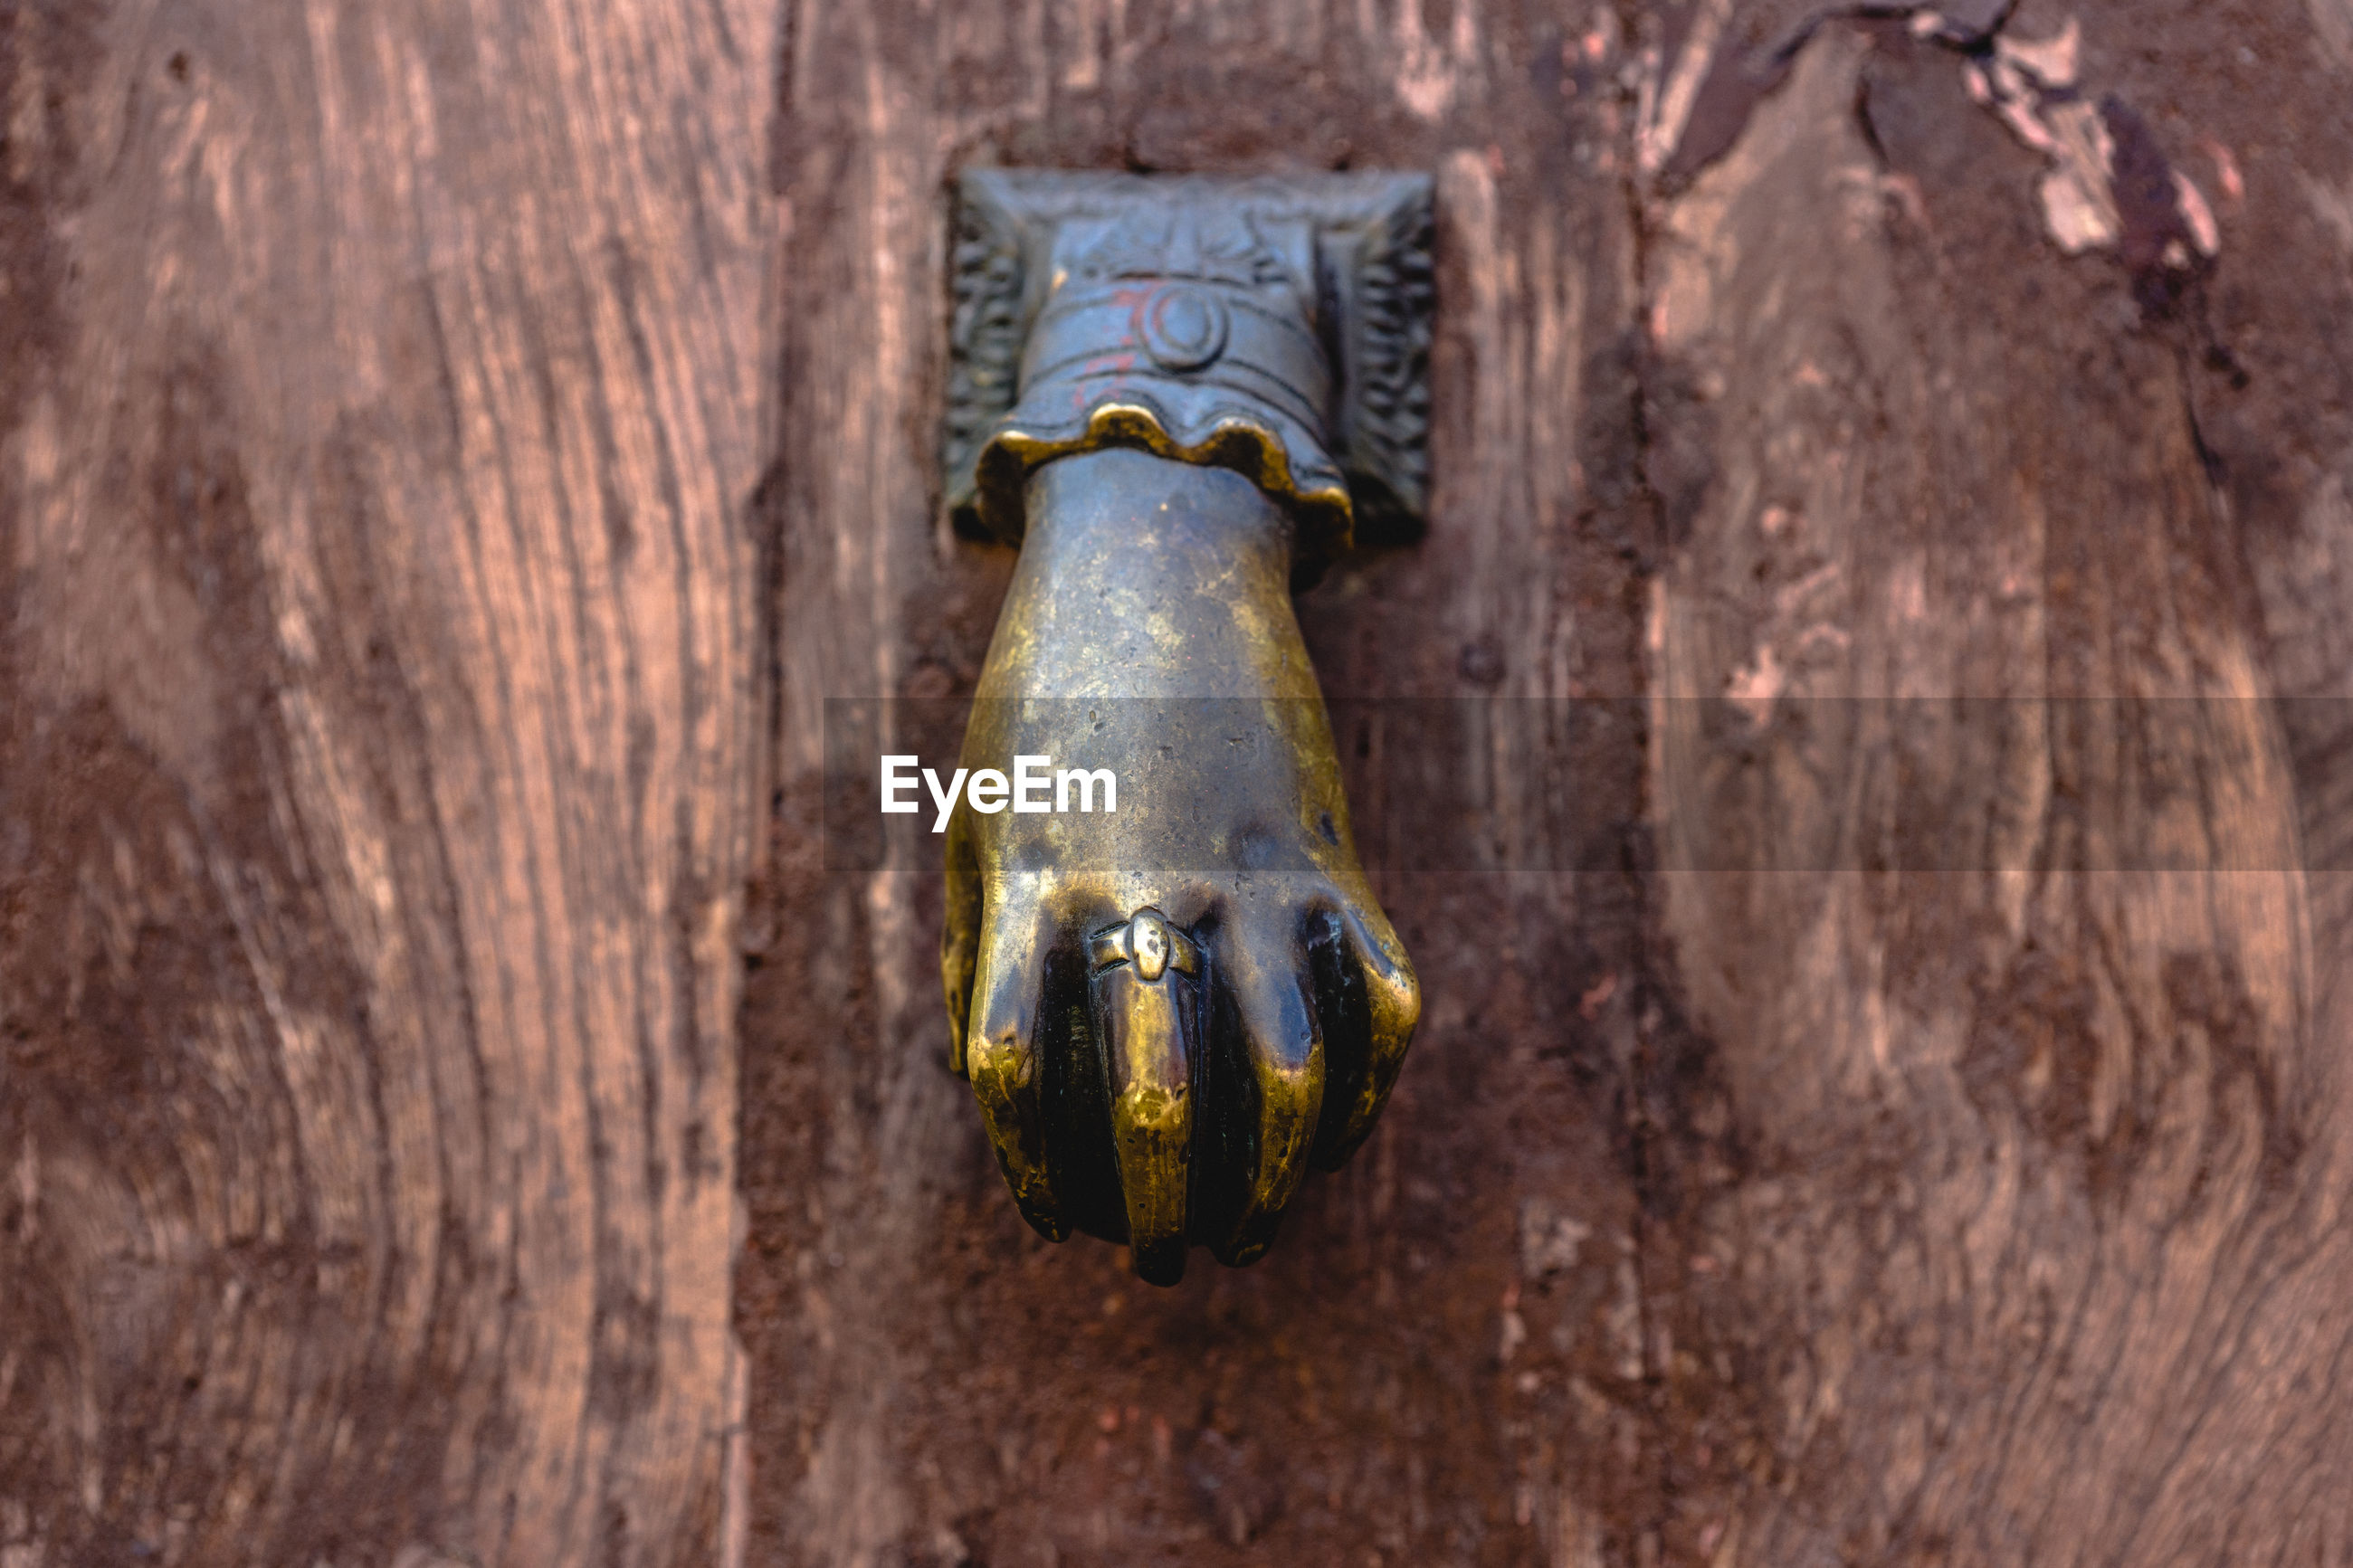 CLOSE-UP OF DOOR KNOCKER ON METAL